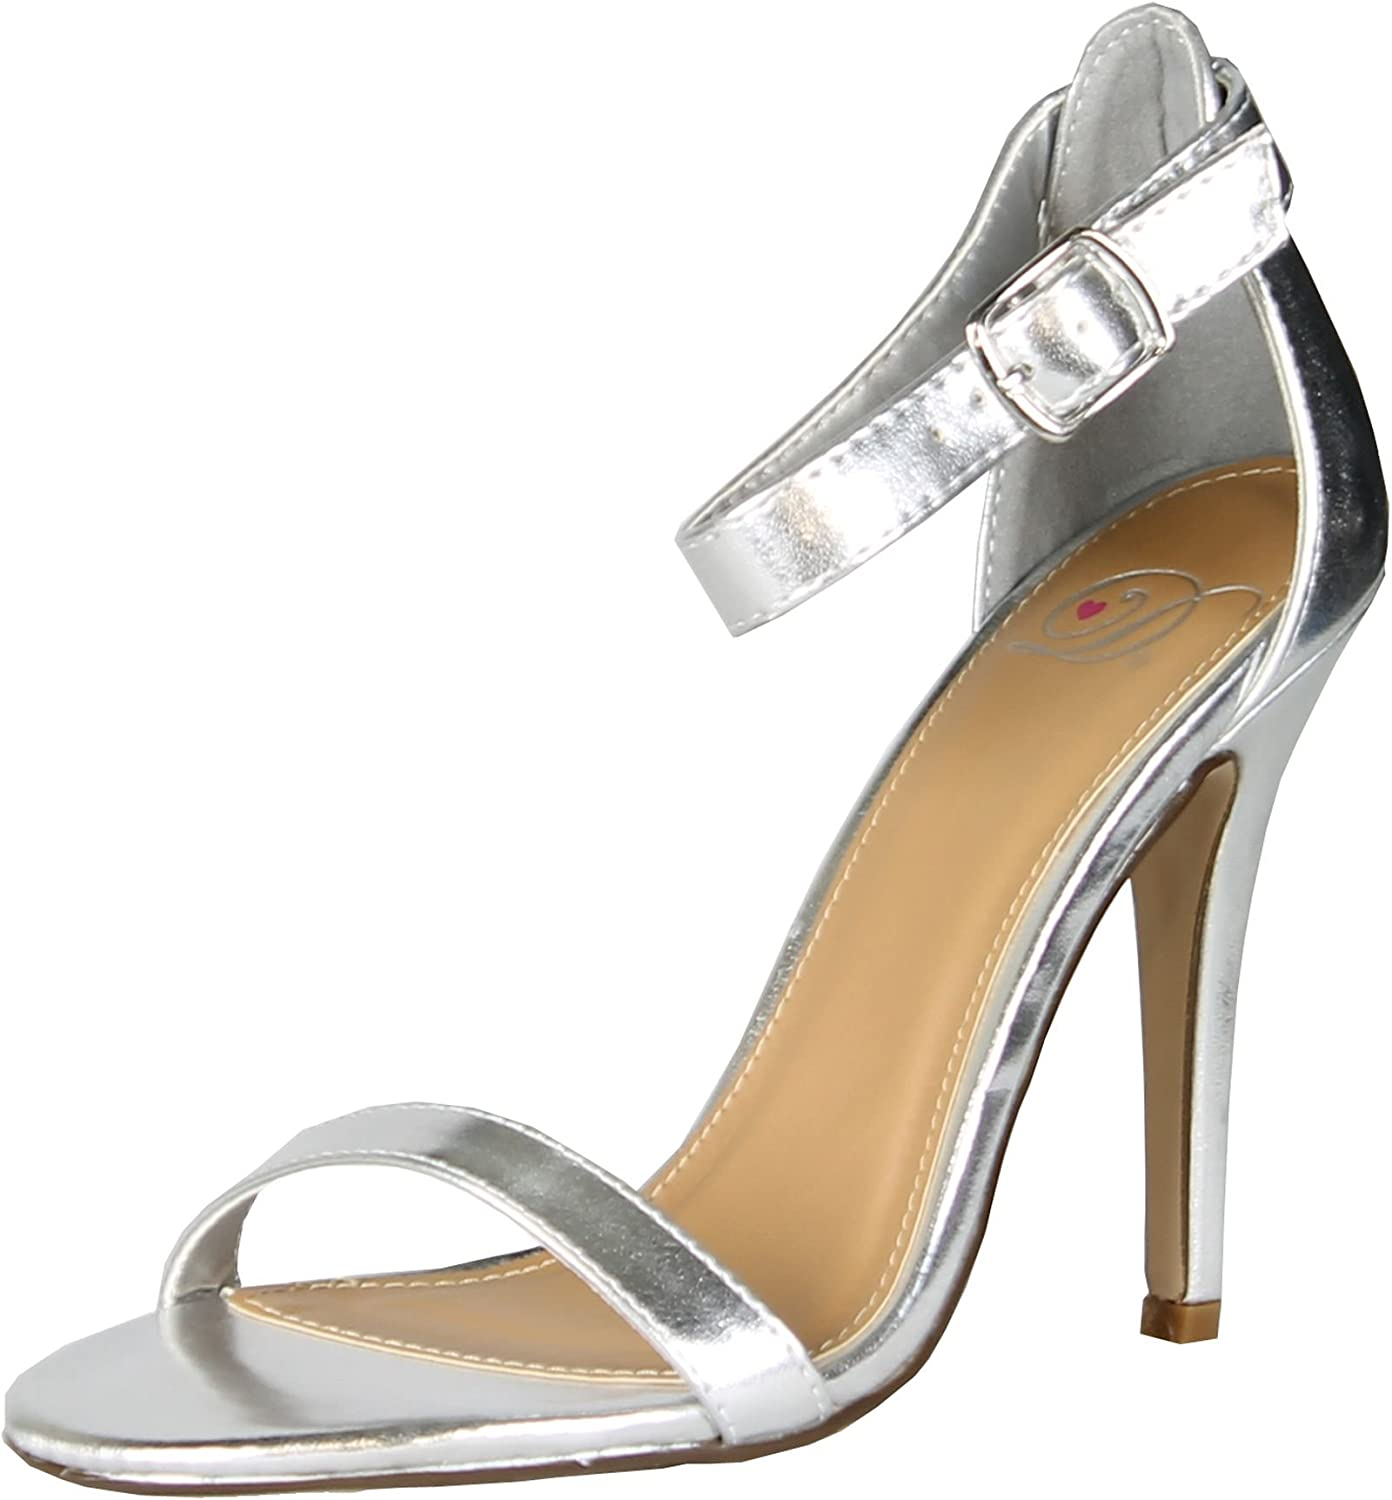 Simple Classy Formal Club Prom Dress Ankle Wrap Sandal Women shoes